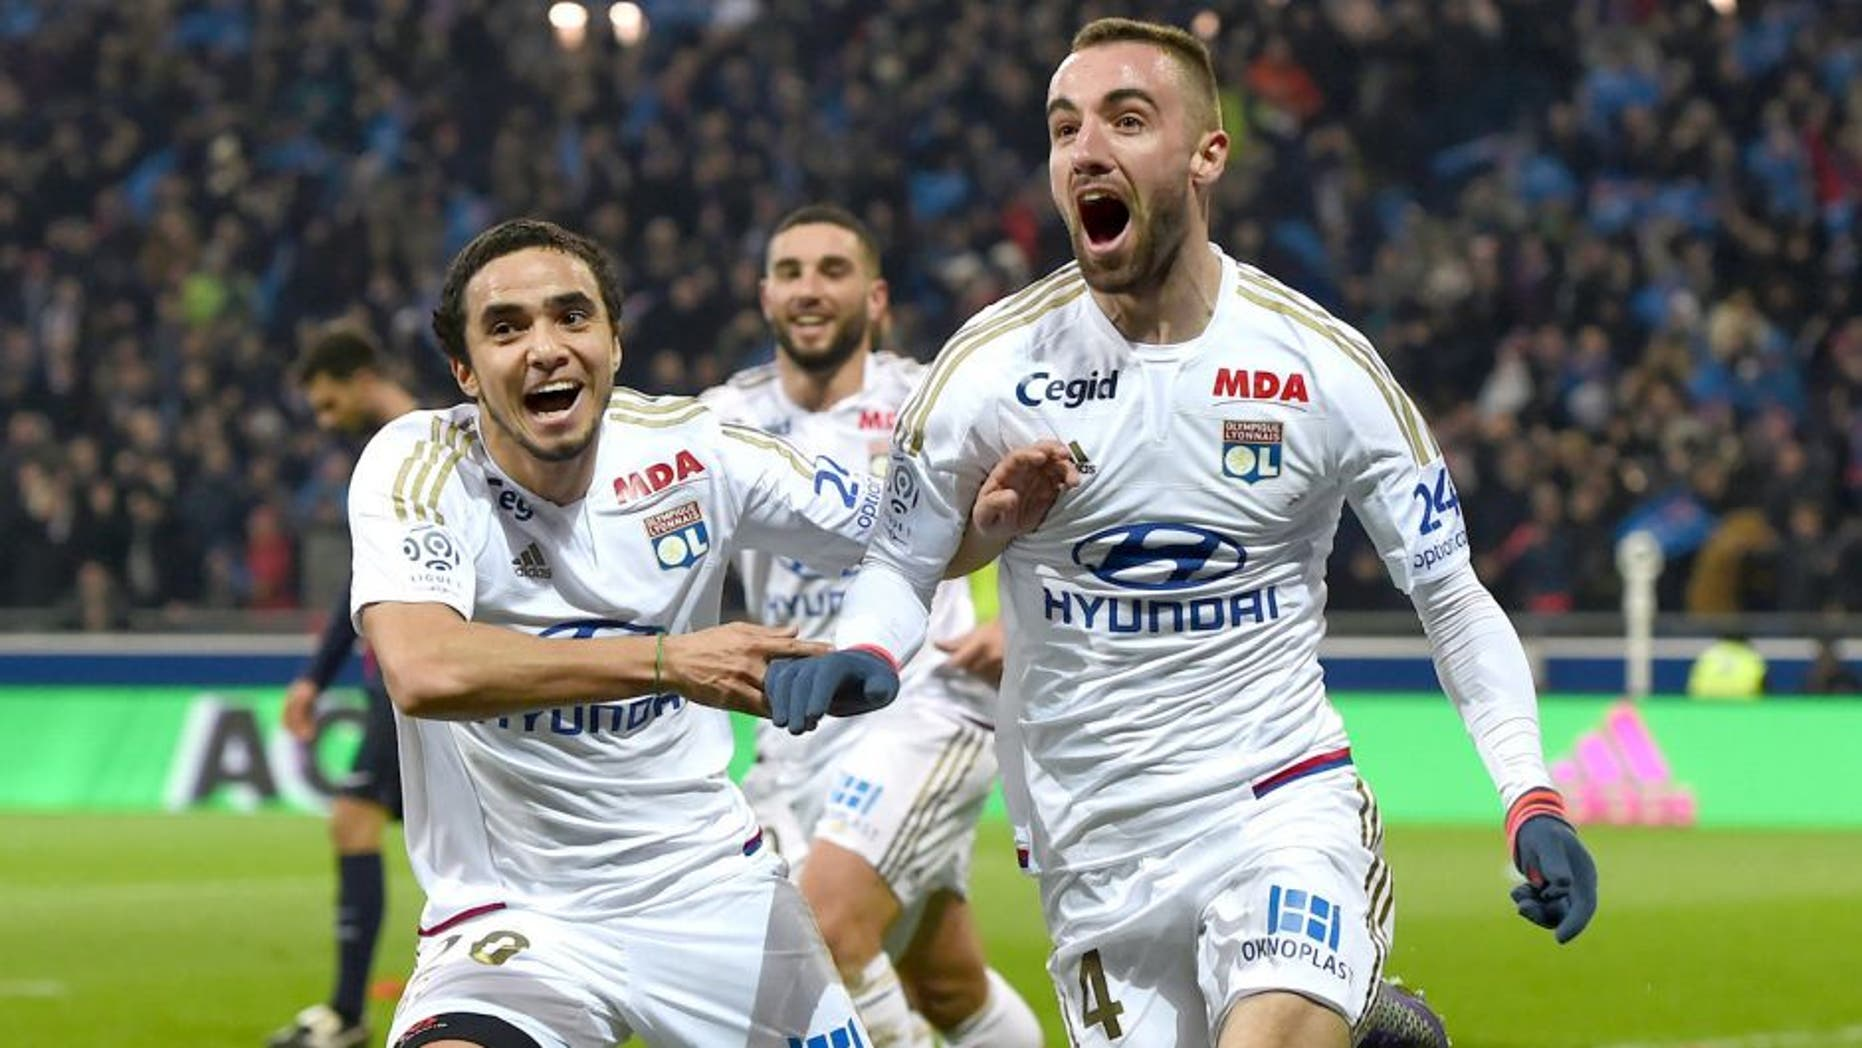 Lyon's Spanish midfielder Sergi Darder (R) reacts after scoring next to Lyon's Brazilian defender Rafael Pereira Da Silva (L) during the French Ligue1 football match between Olympique Lyonnais and Paris Saint-Germain, on February 28, 2016 at the New stadium in Decines-Charpieu near Lyon, southeastern France. AFP PHOTO/PHILIPPE DESMAZES / AFP / PHILIPPE DESMAZES (Photo credit should read PHILIPPE DESMAZES/AFP/Getty Images)